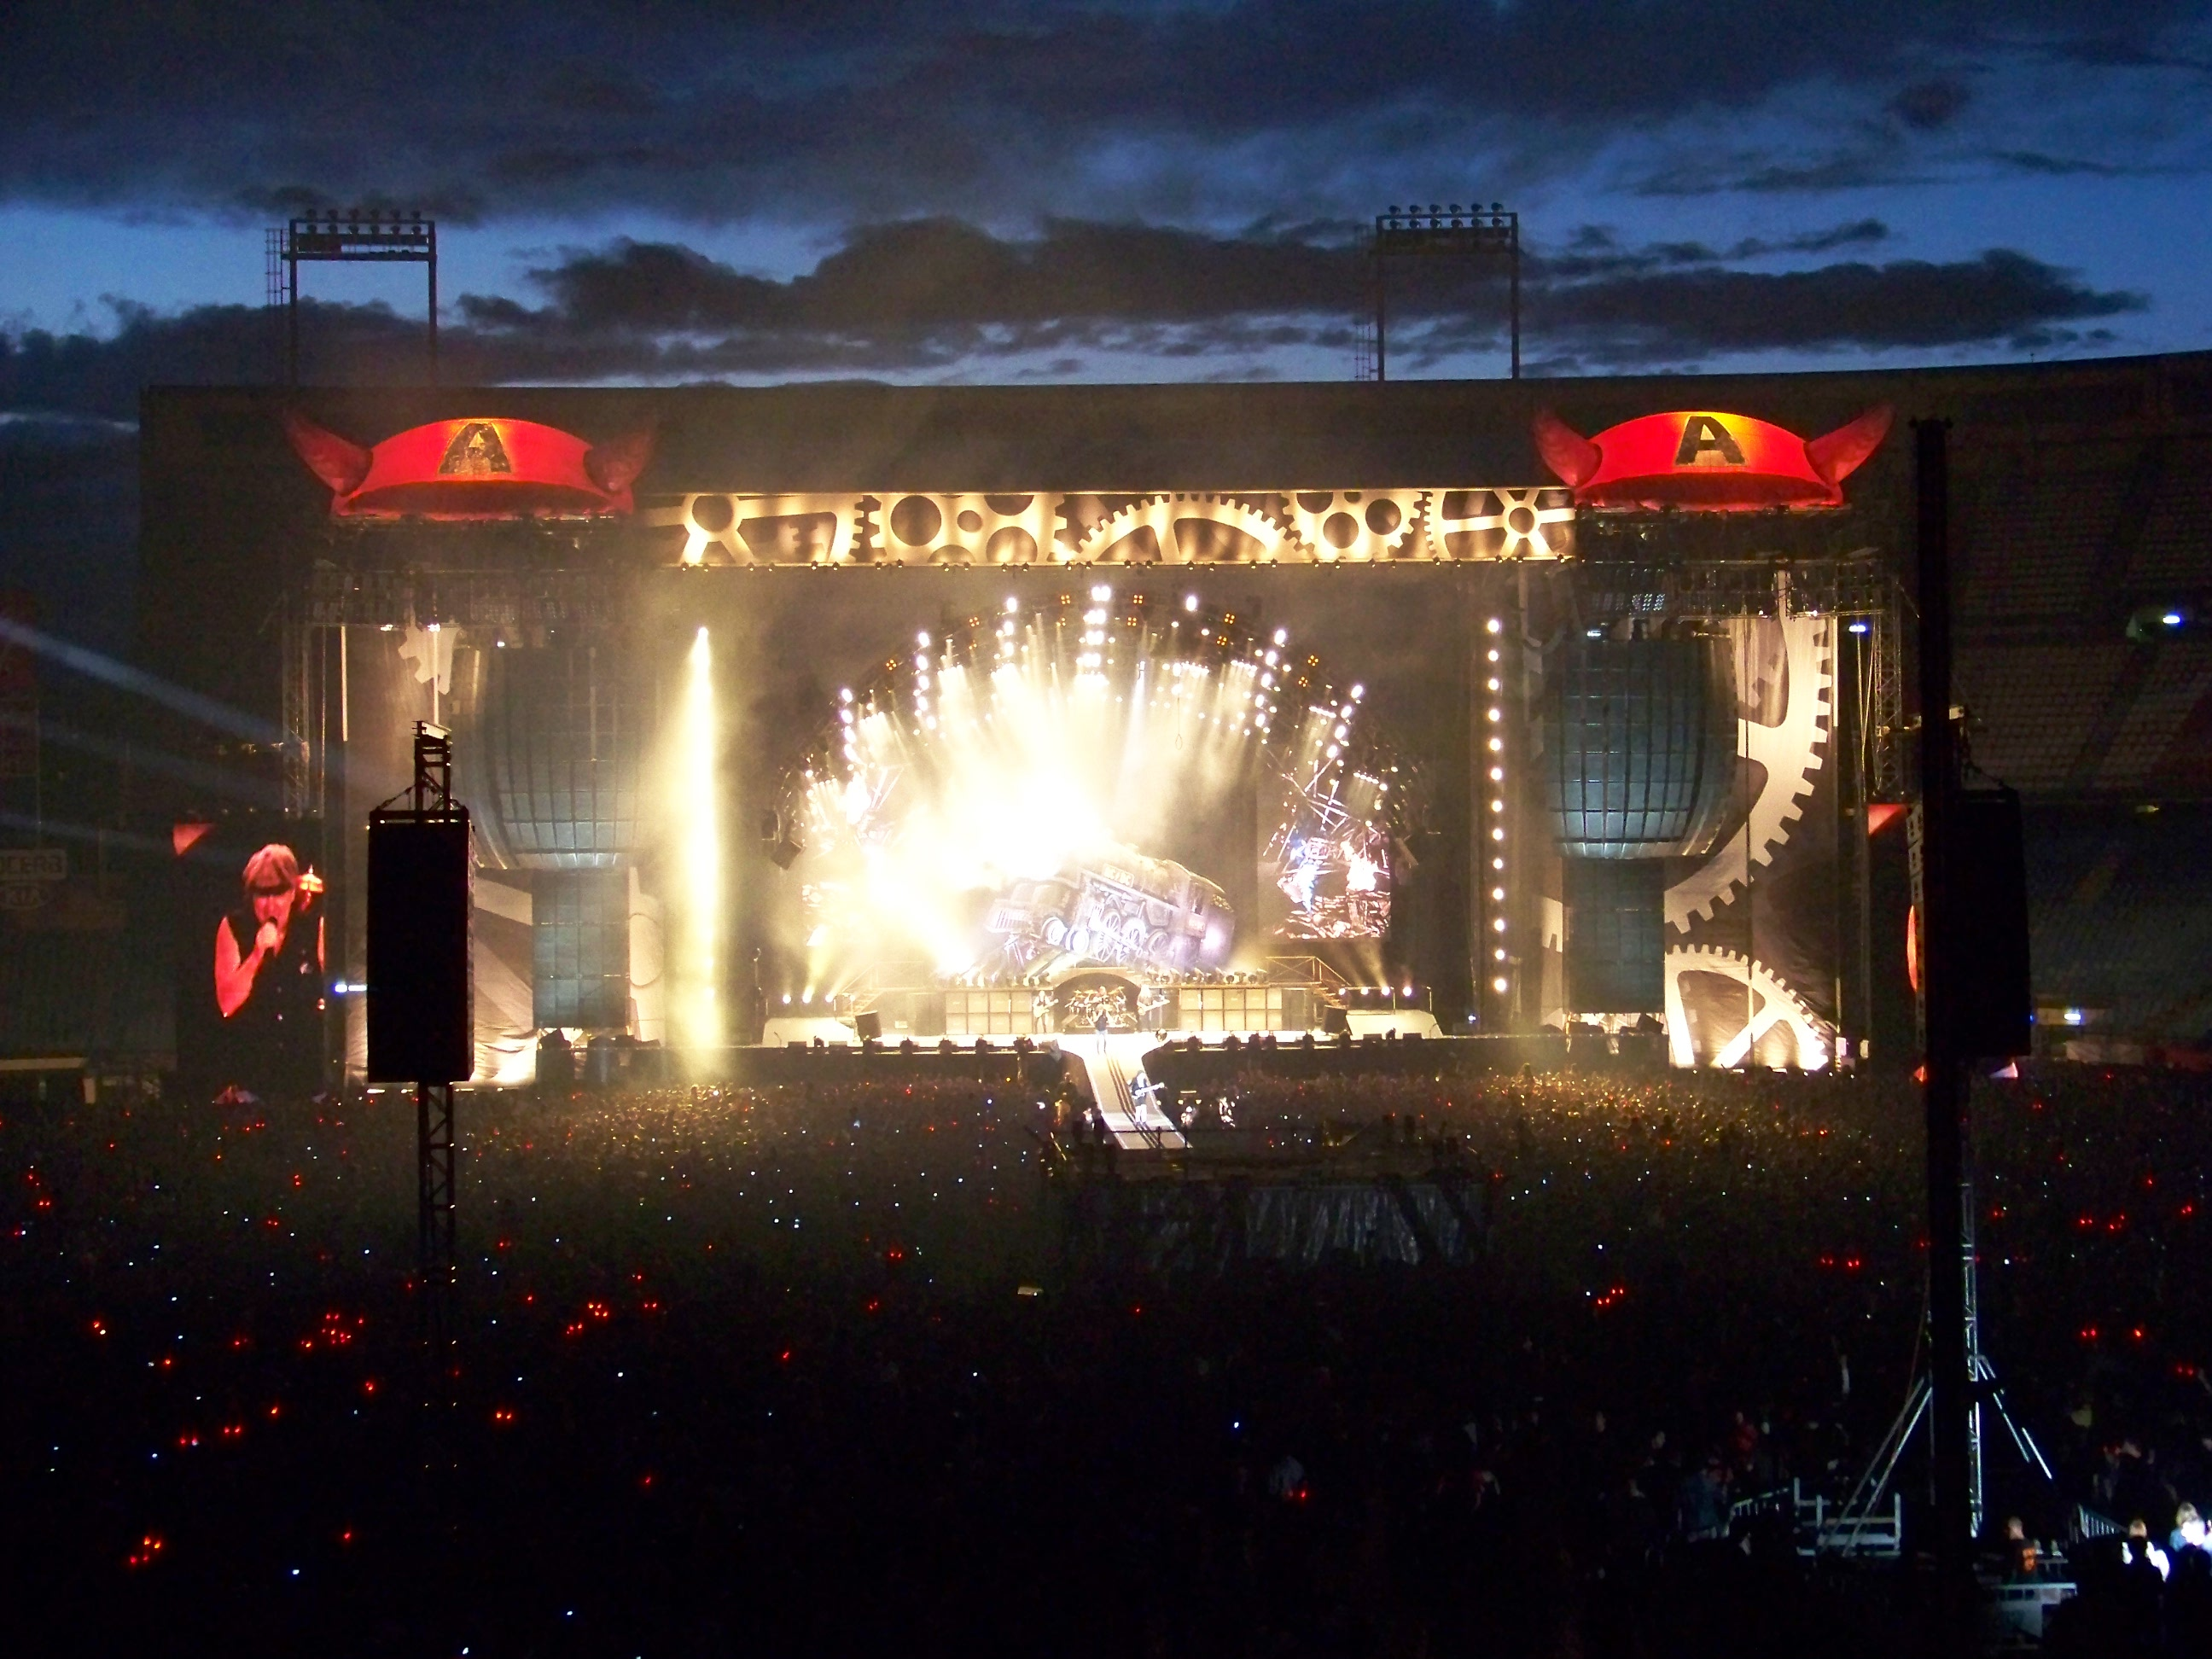 http://upload.wikimedia.org/wikipedia/commons/4/44/Madrid-acdc_12.JPG